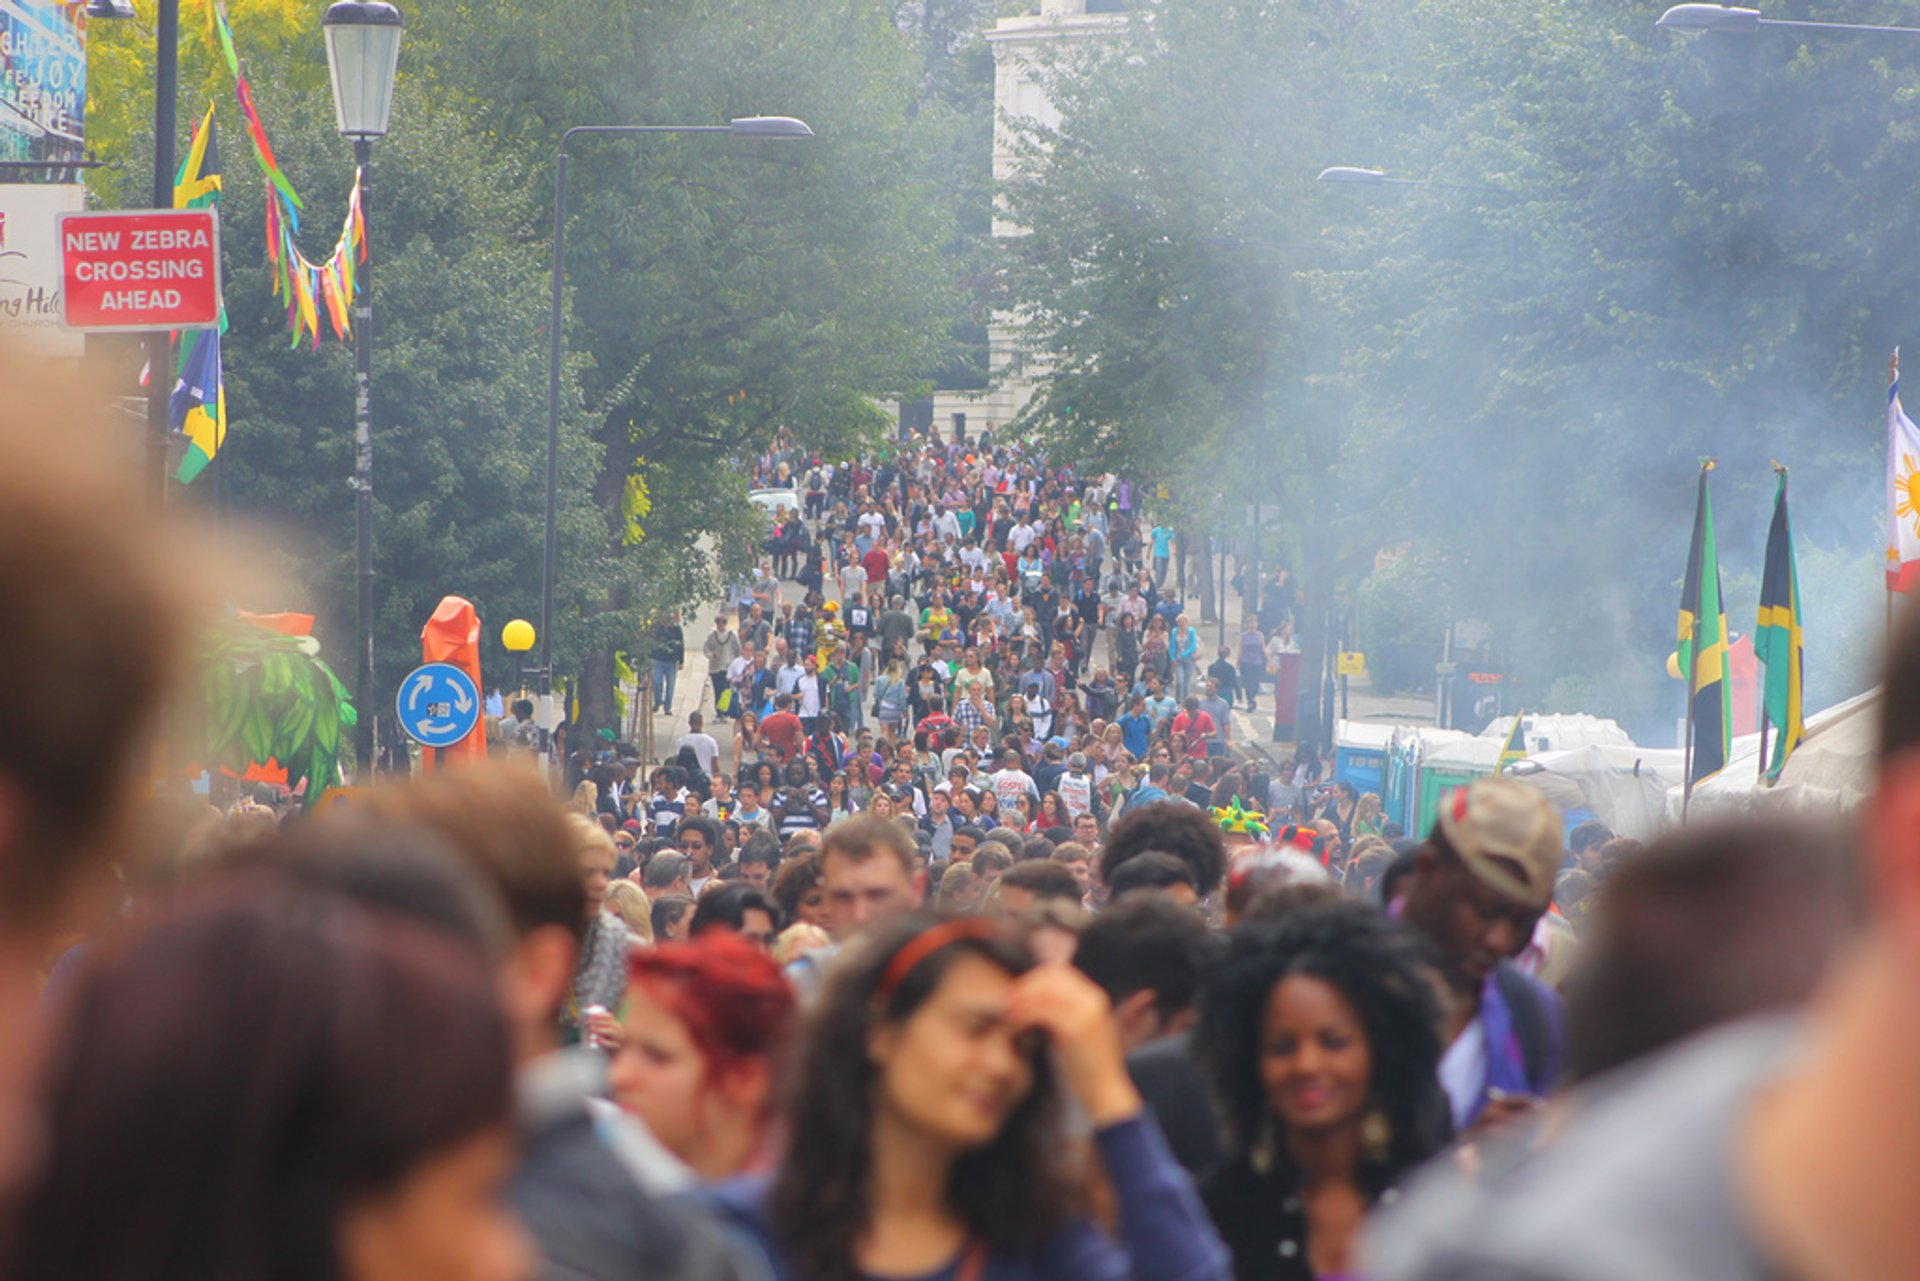 Best time to see Notting Hill Carnival in London 2020